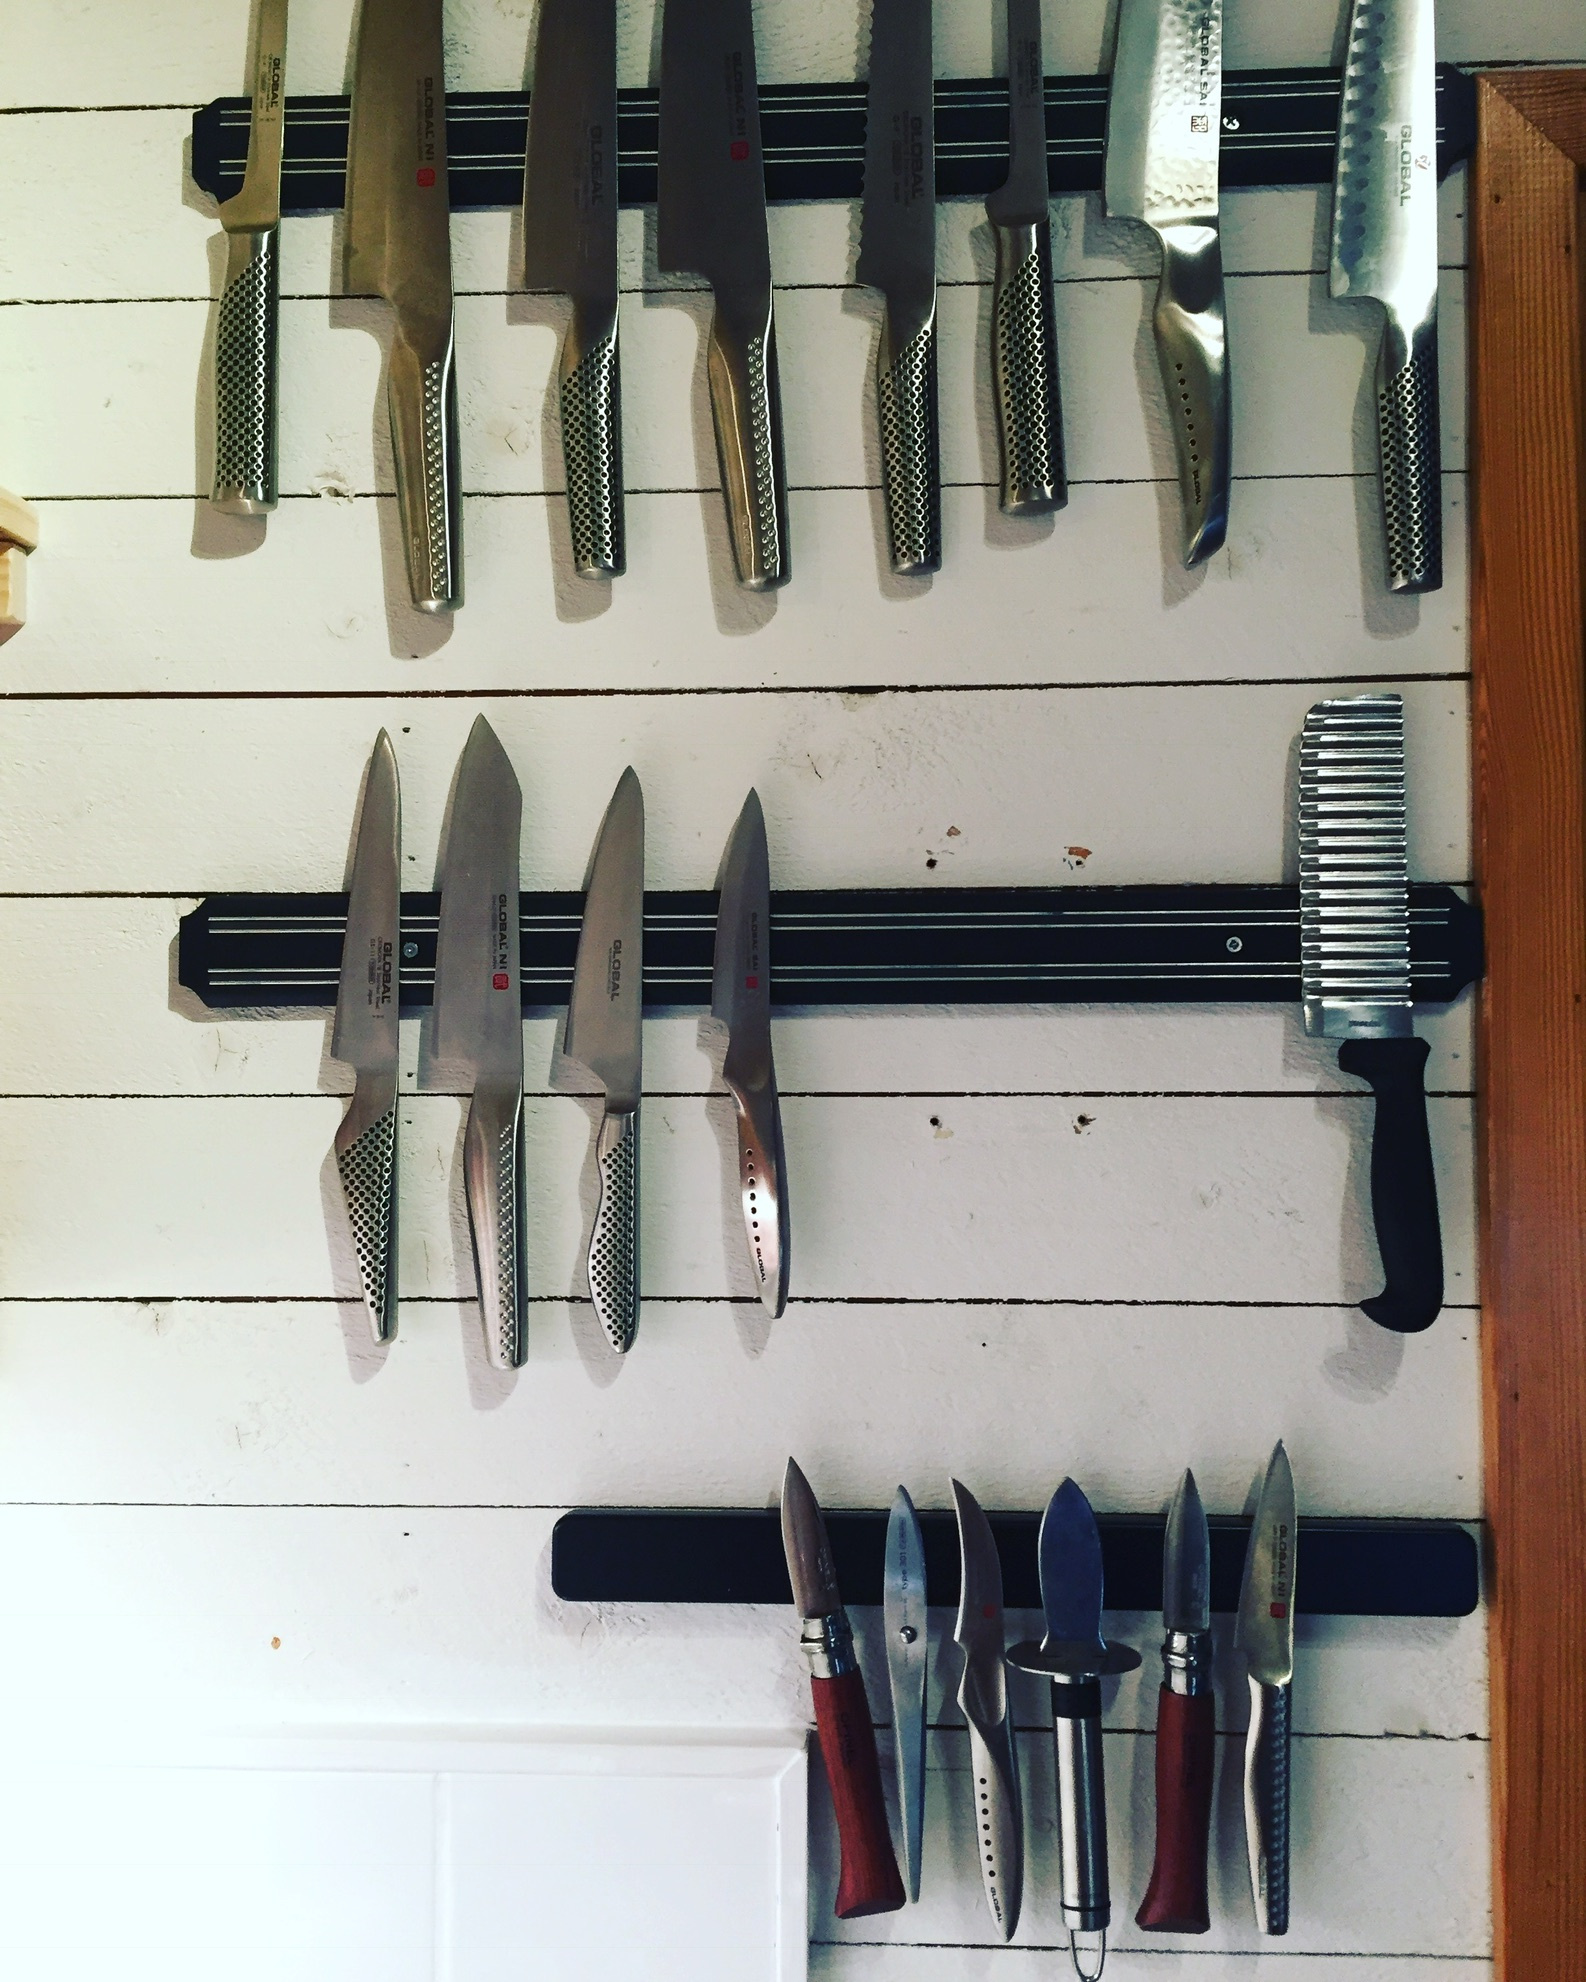 We use Global knives.